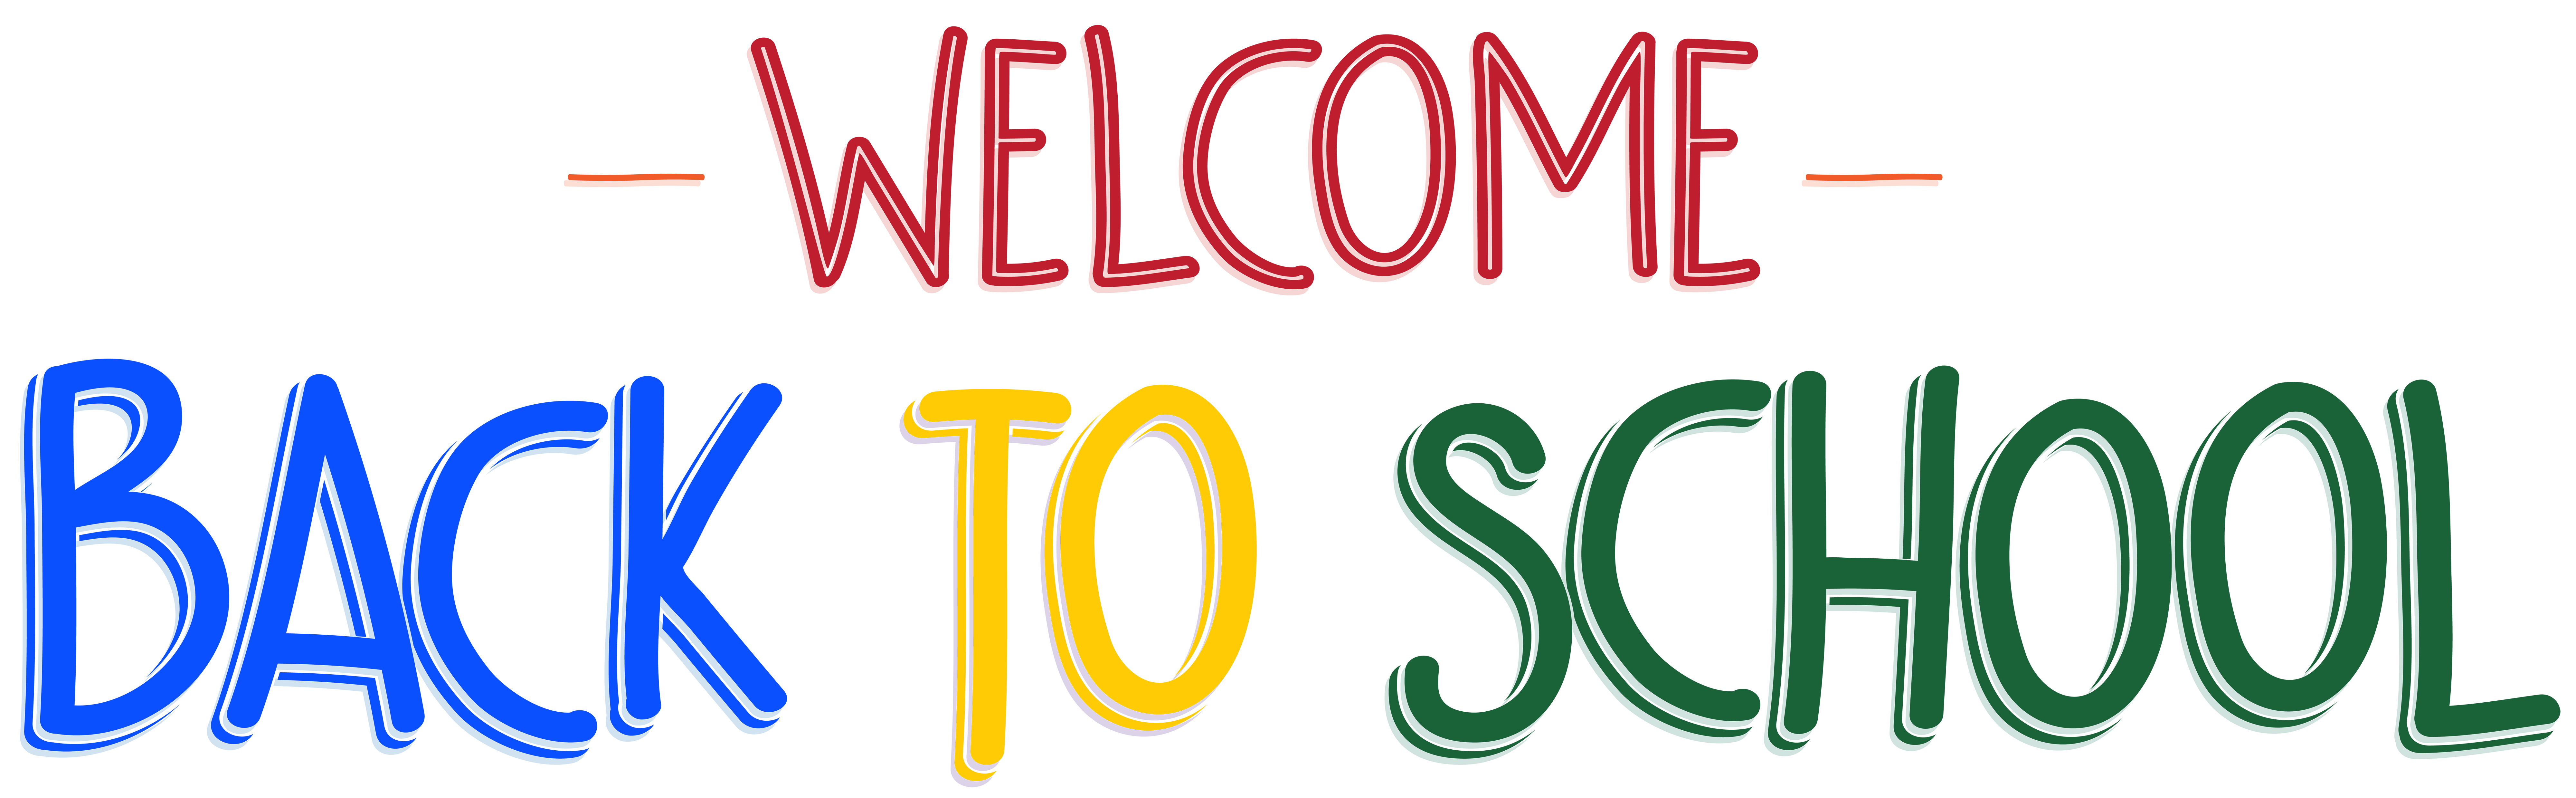 Countdown to school clipart banner freeuse library Welcome Back to School PNG Clip Art Image | Gallery Yopriceville ... banner freeuse library